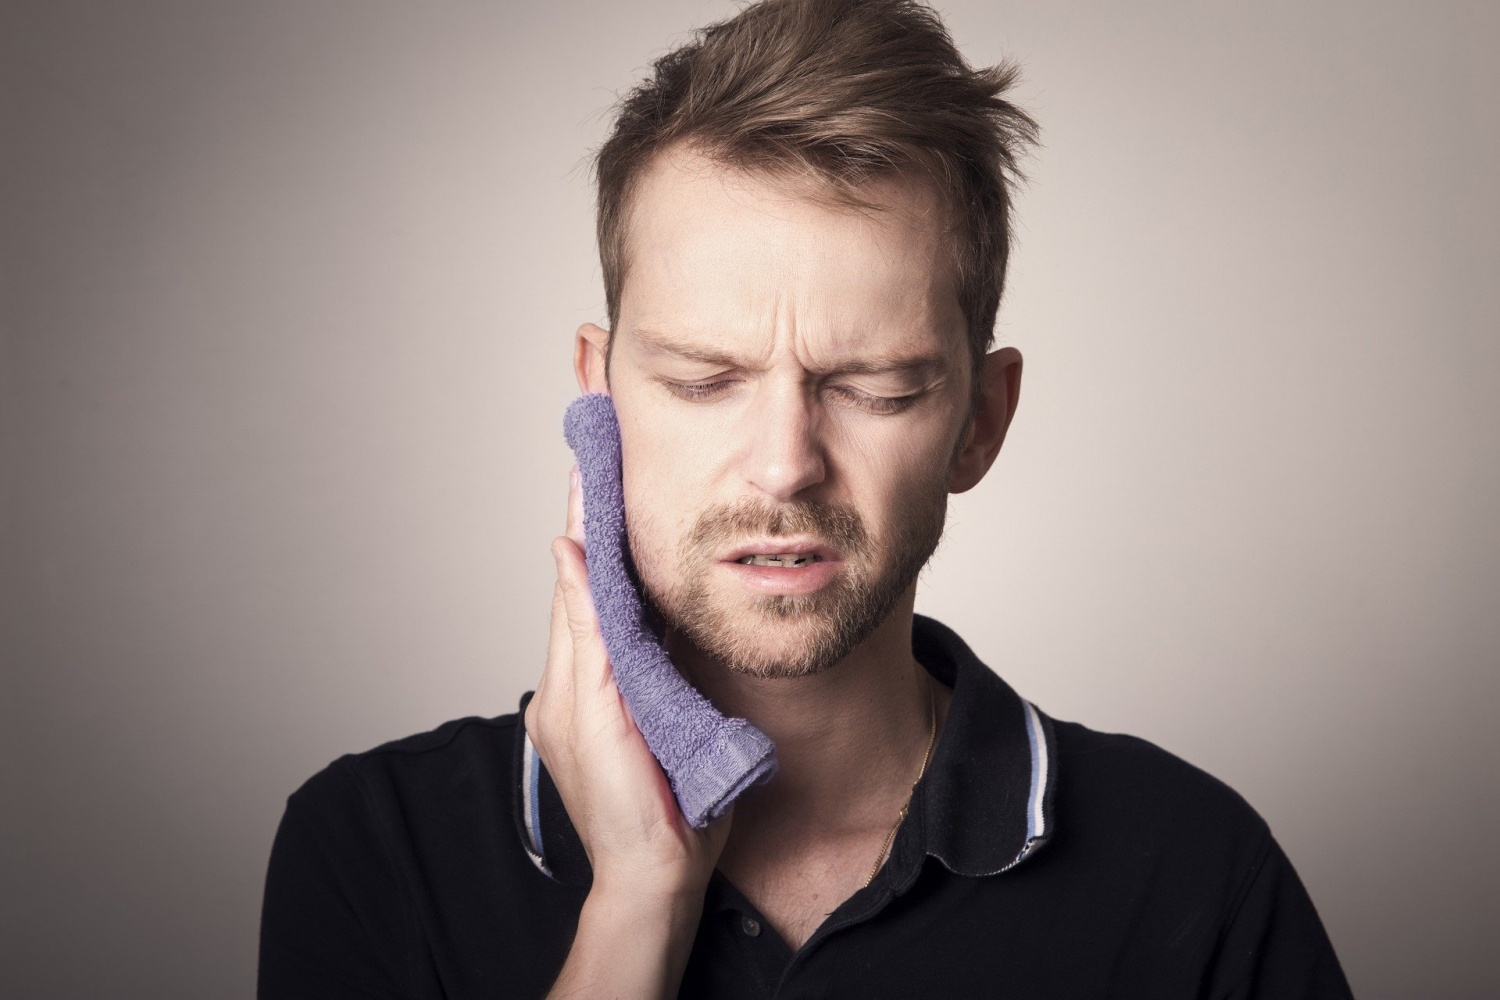 jaw pain from COVID-19